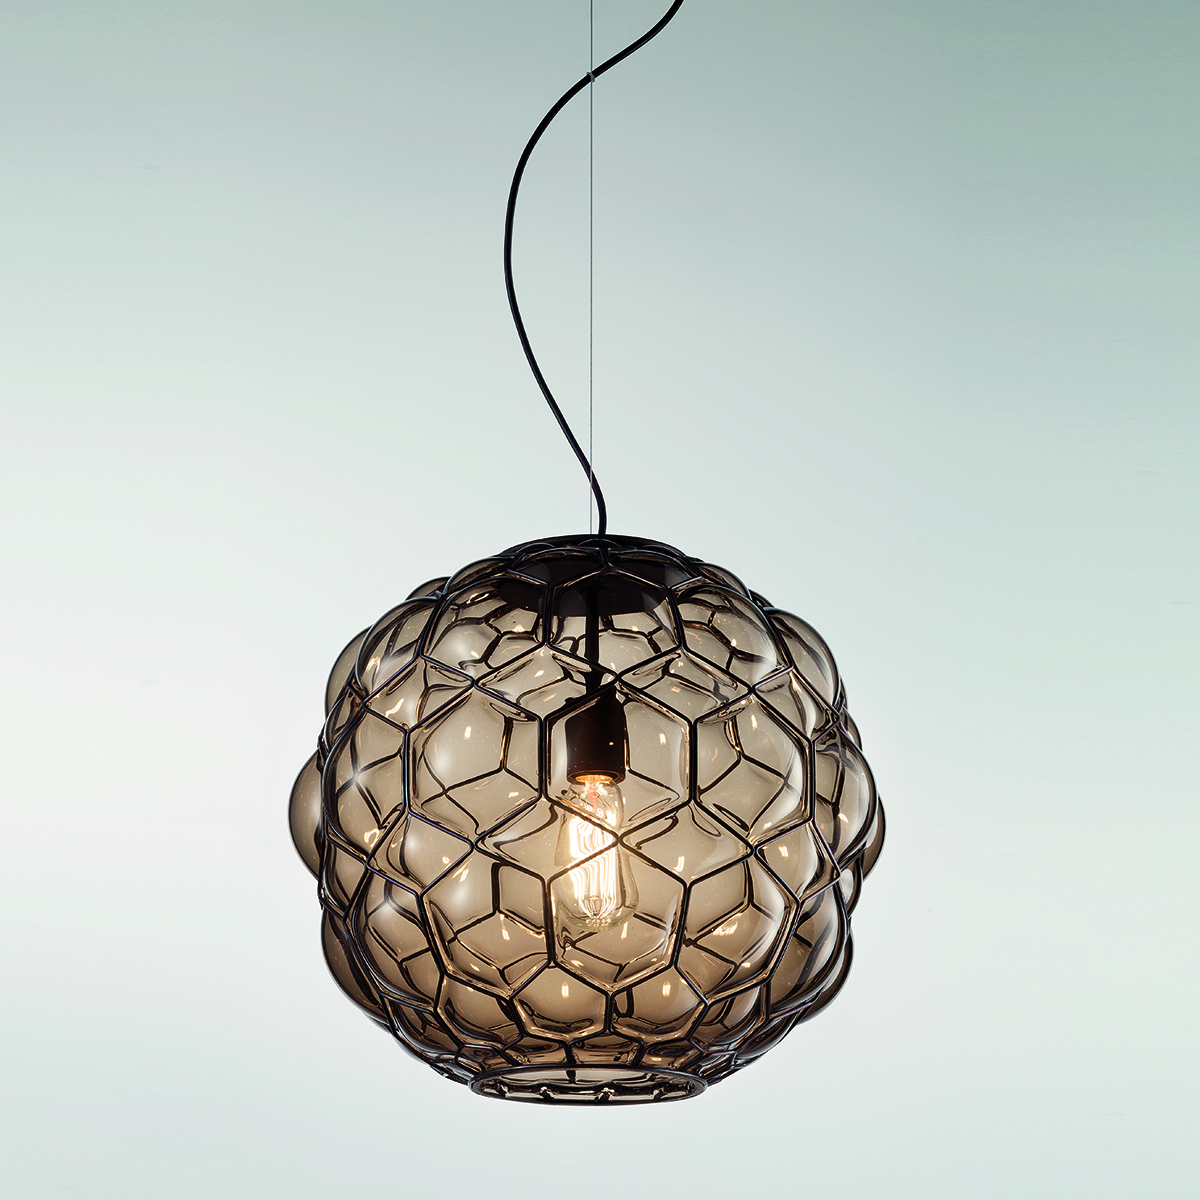 Galapagos Pendant Light - The Galapagos Pendant Light is designed in a way that resembles the shell of a tortoise. It almost looks alive and moving due to its organic shape. This light comes in two finishes : Smooth Taupe and Acidated Milk White and the interior is Satin Amber. It is hand made blown glass suspension with the techniques of the old Murano glass masters. Uses 250V input, 1X E27 max 100W ~ IP20 Bulbs</p>